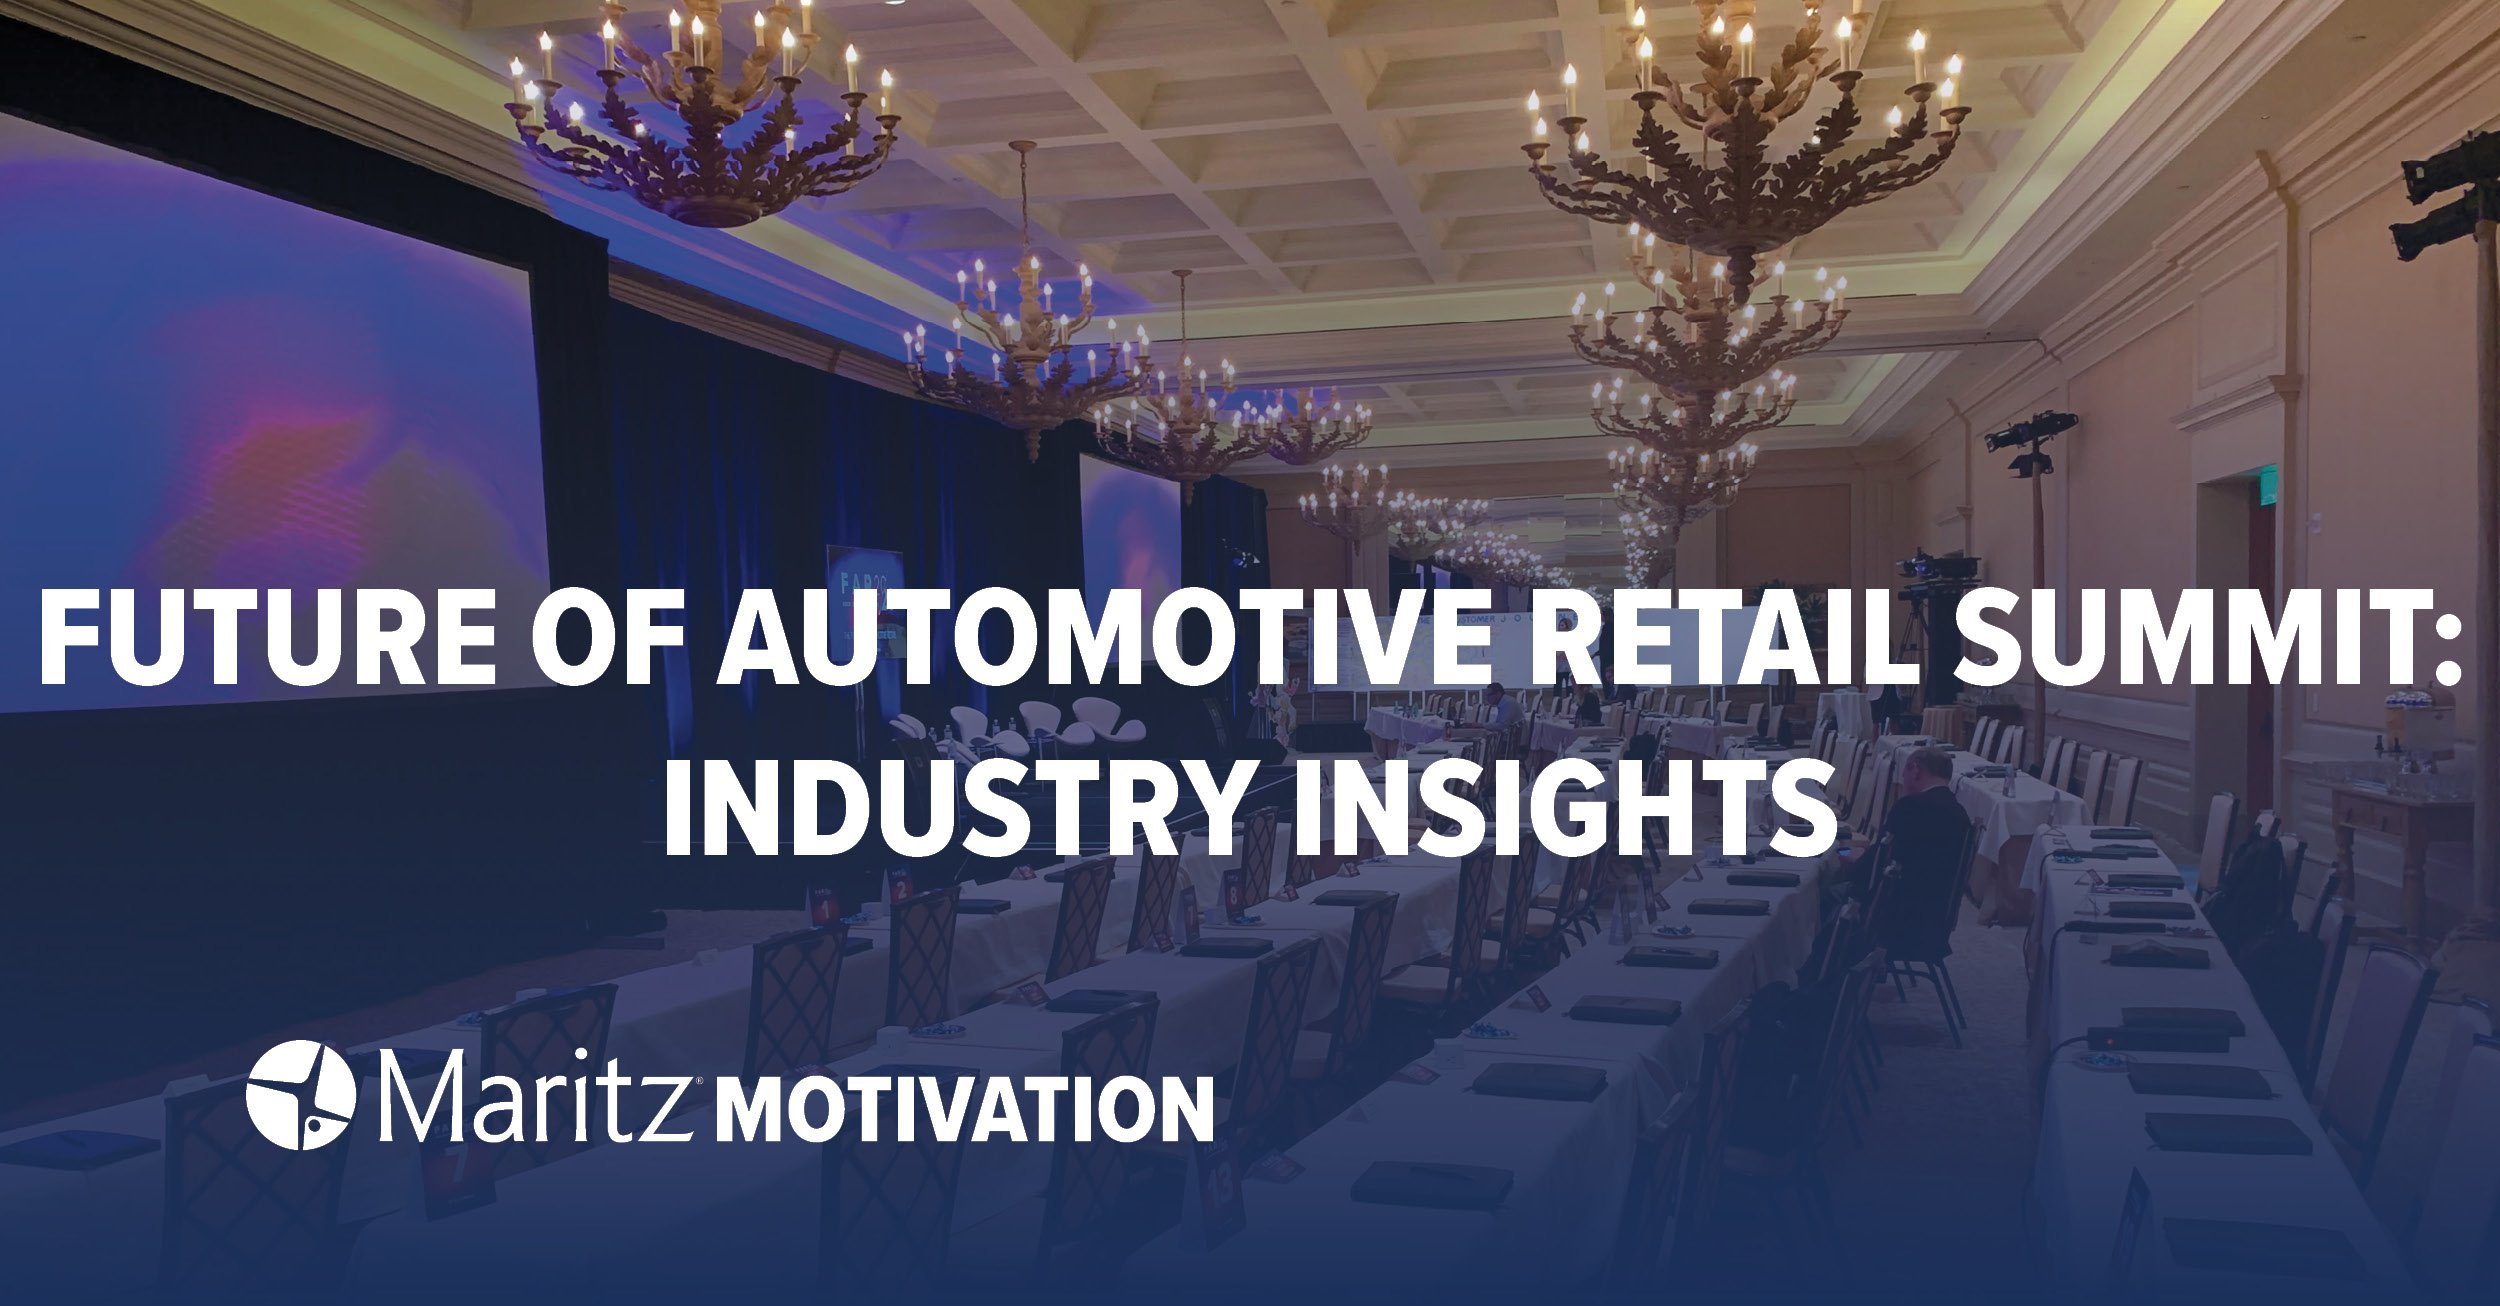 Future of Automotive Retail Summit: Industry Insights